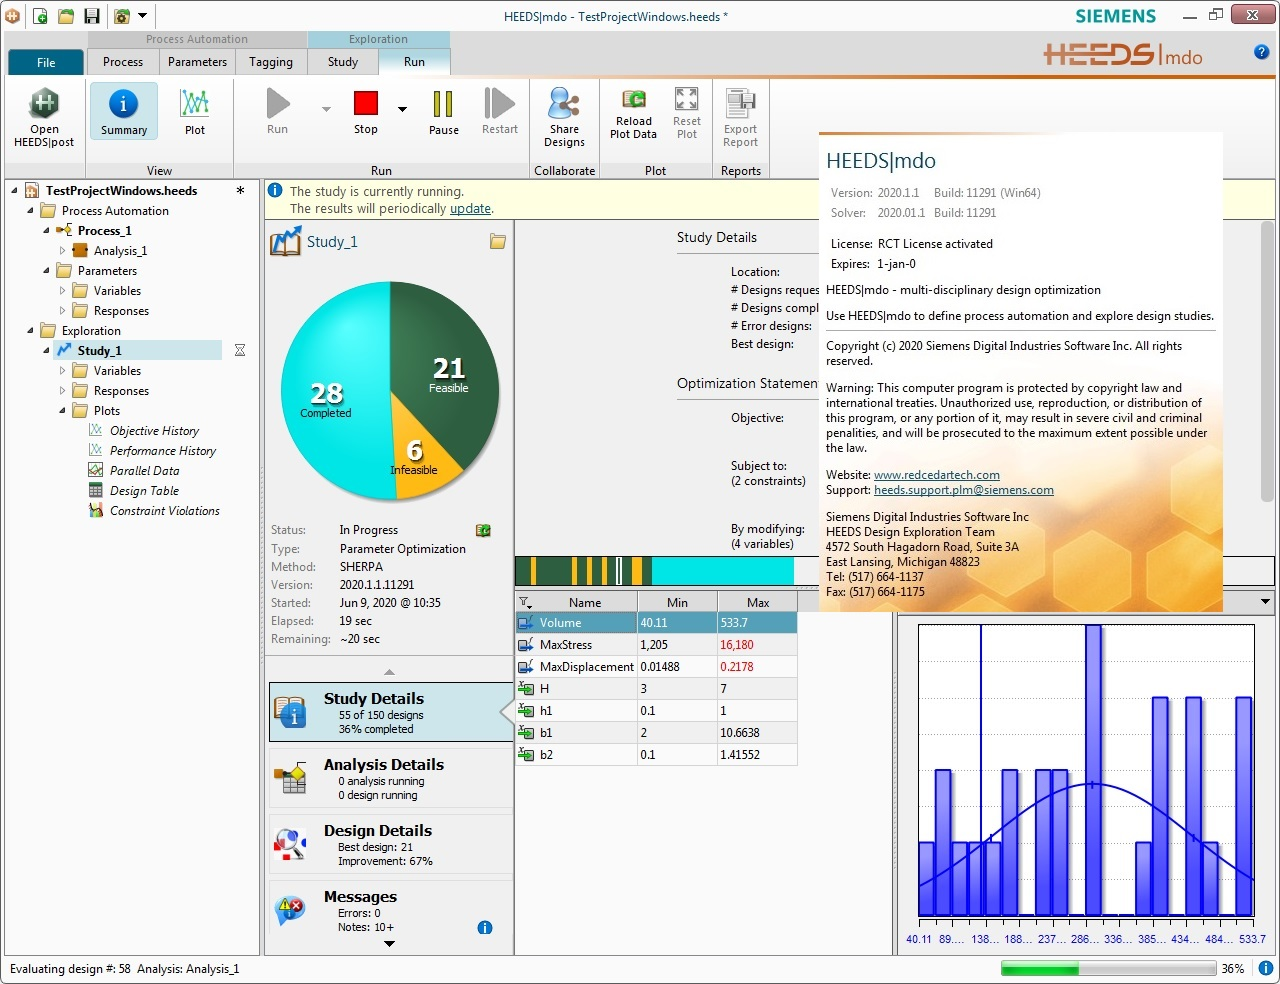 Working with Siemens HEEDS MDO 2020.1.1 full license